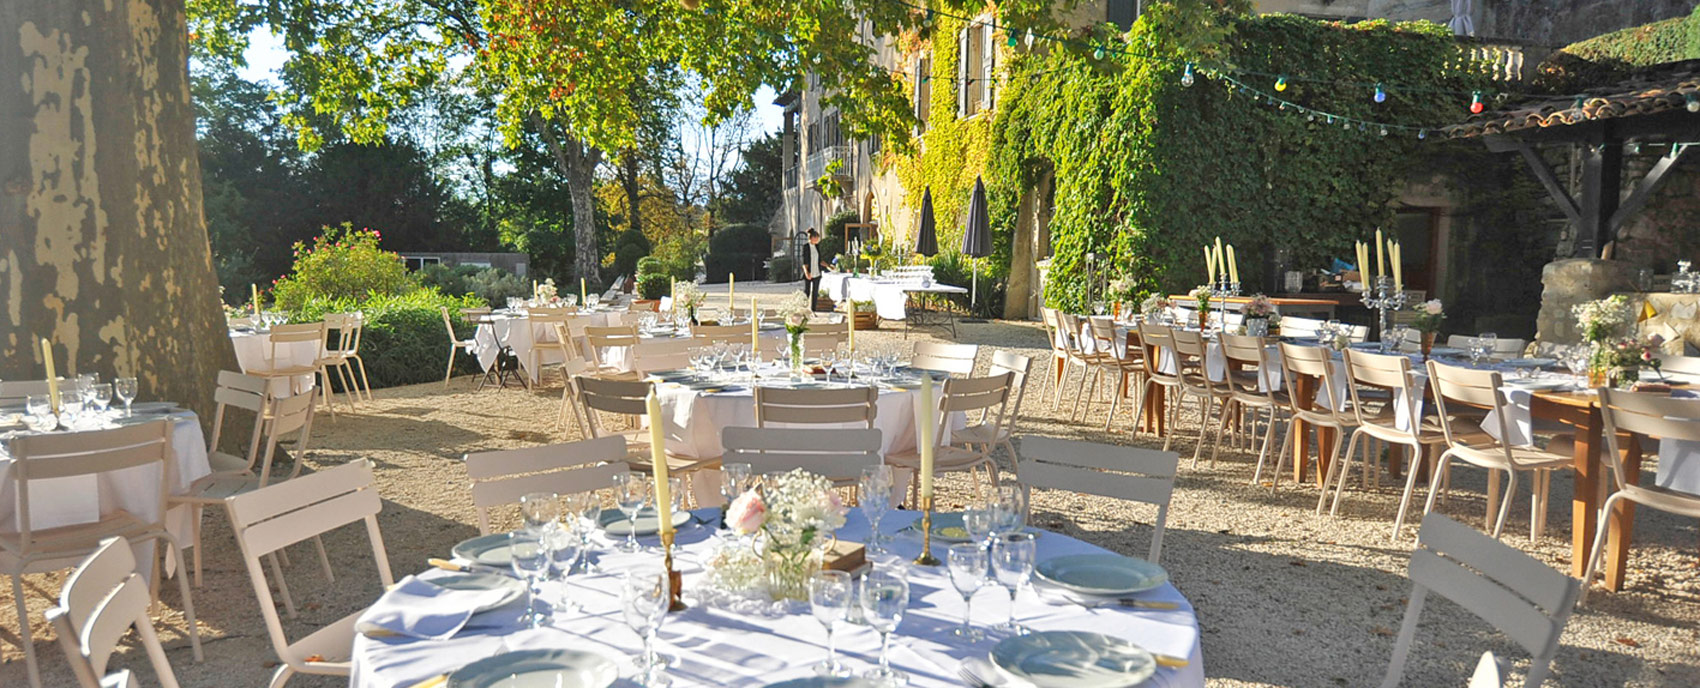 weddings domaine de Blacons